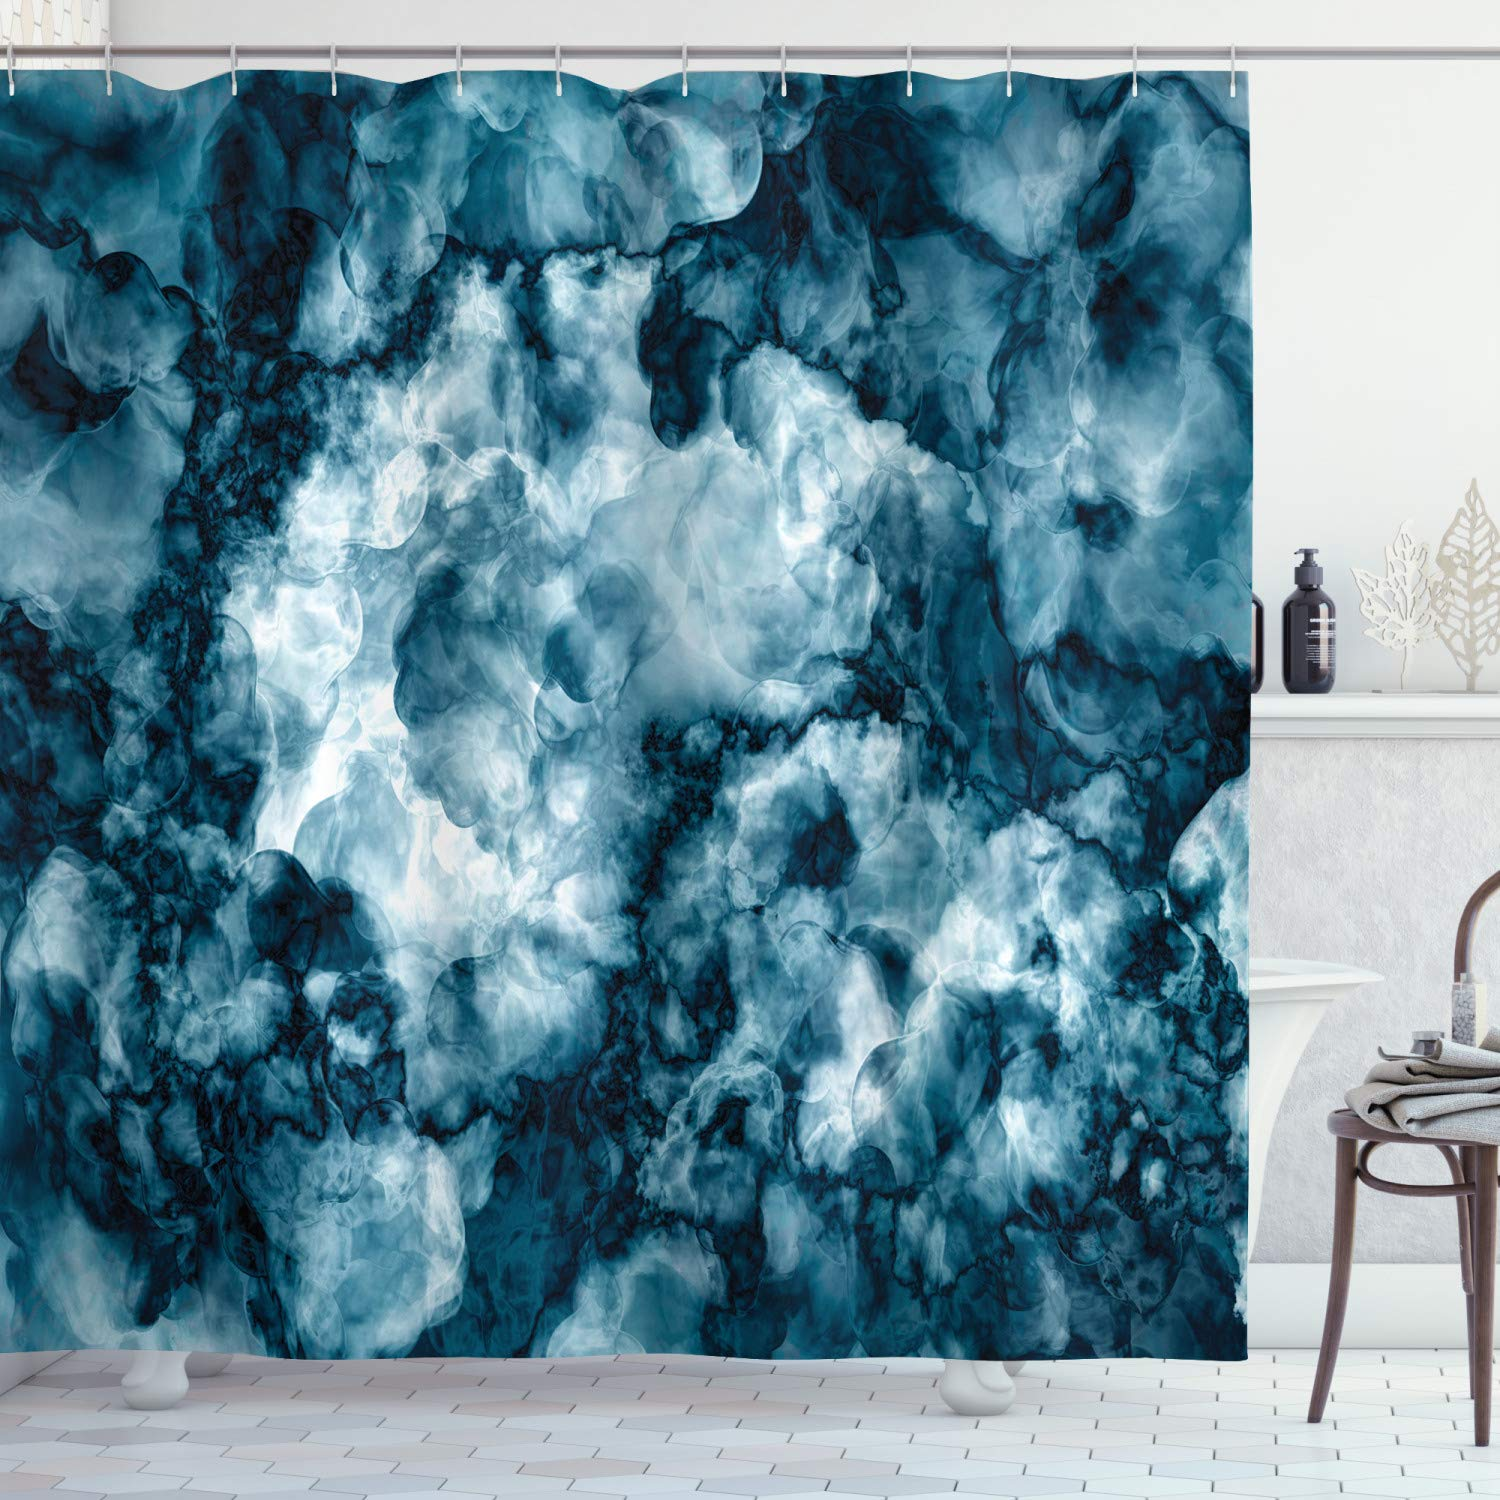 Ambesonne Marble Shower Curtain Antique Marble Stone With Blurry Distressed Motley Fractal Effects Illustration Artwork Cloth Fabric Bathroom Decor Set With Hooks 84 Long Extra Blue Indigo